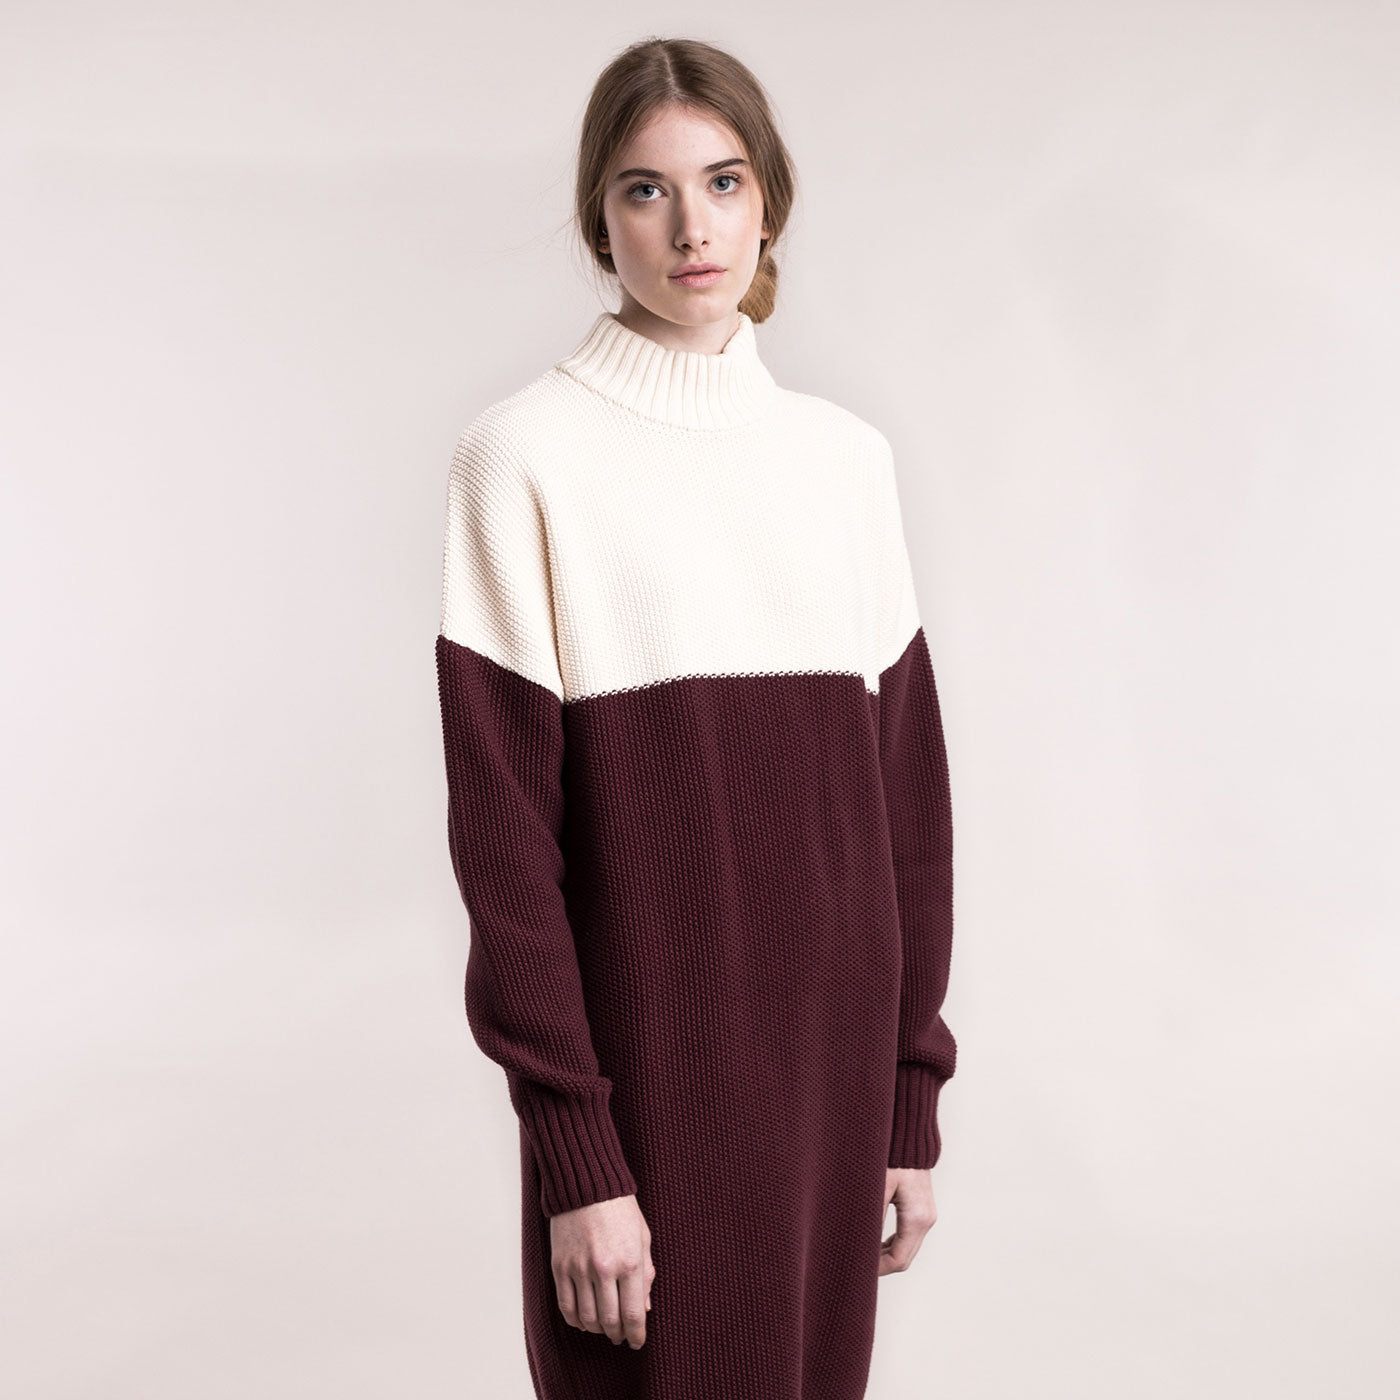 The model wears a cream and burgundy, sustainable organic cotton, knitted double-colour dress., frontal view.